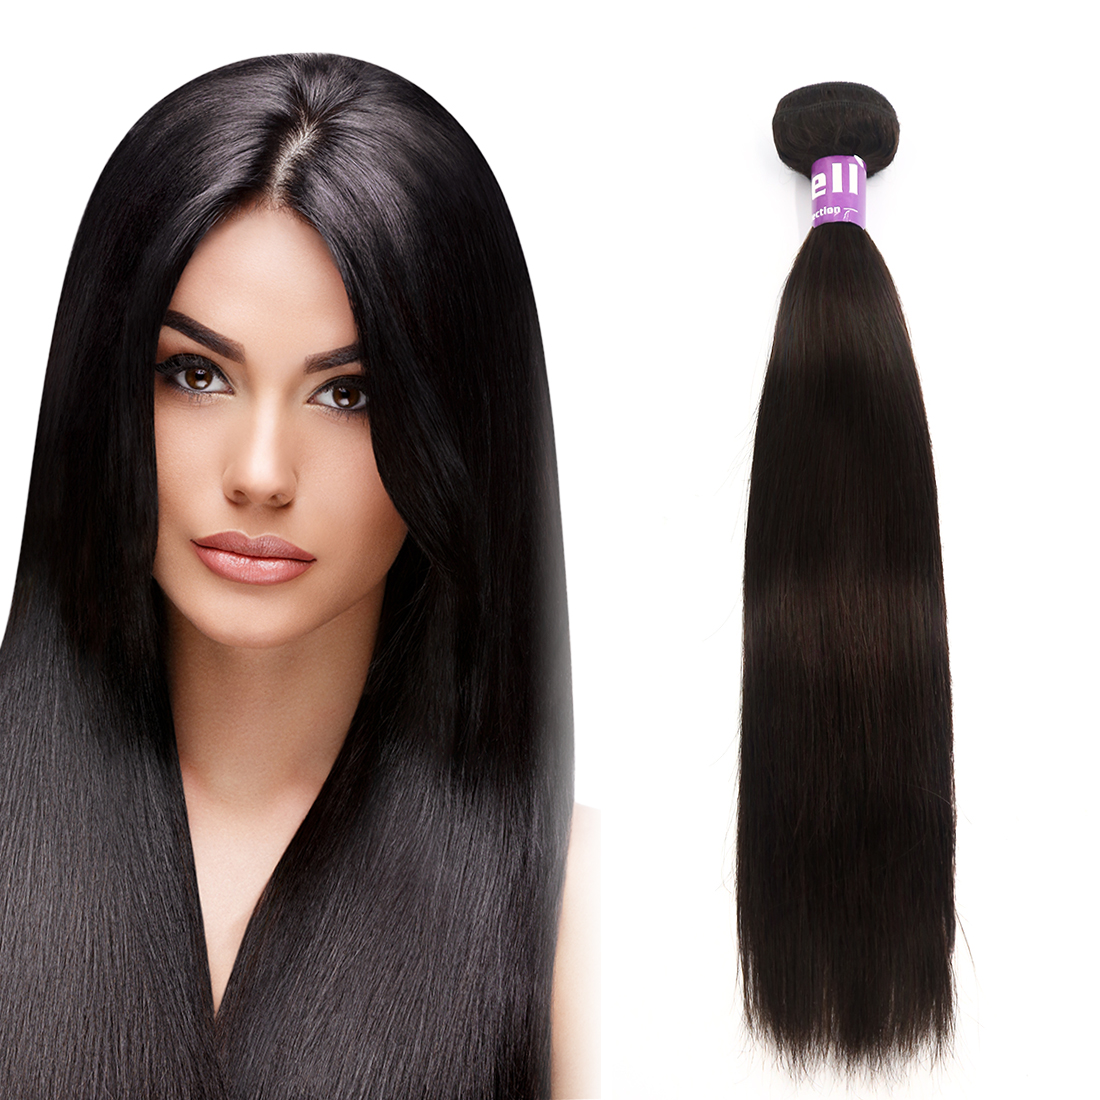 "Human Hair 20"" 1 Bundle Straight Brazilian Weave Peruvian Hair Silky Hair Extensions 7A"